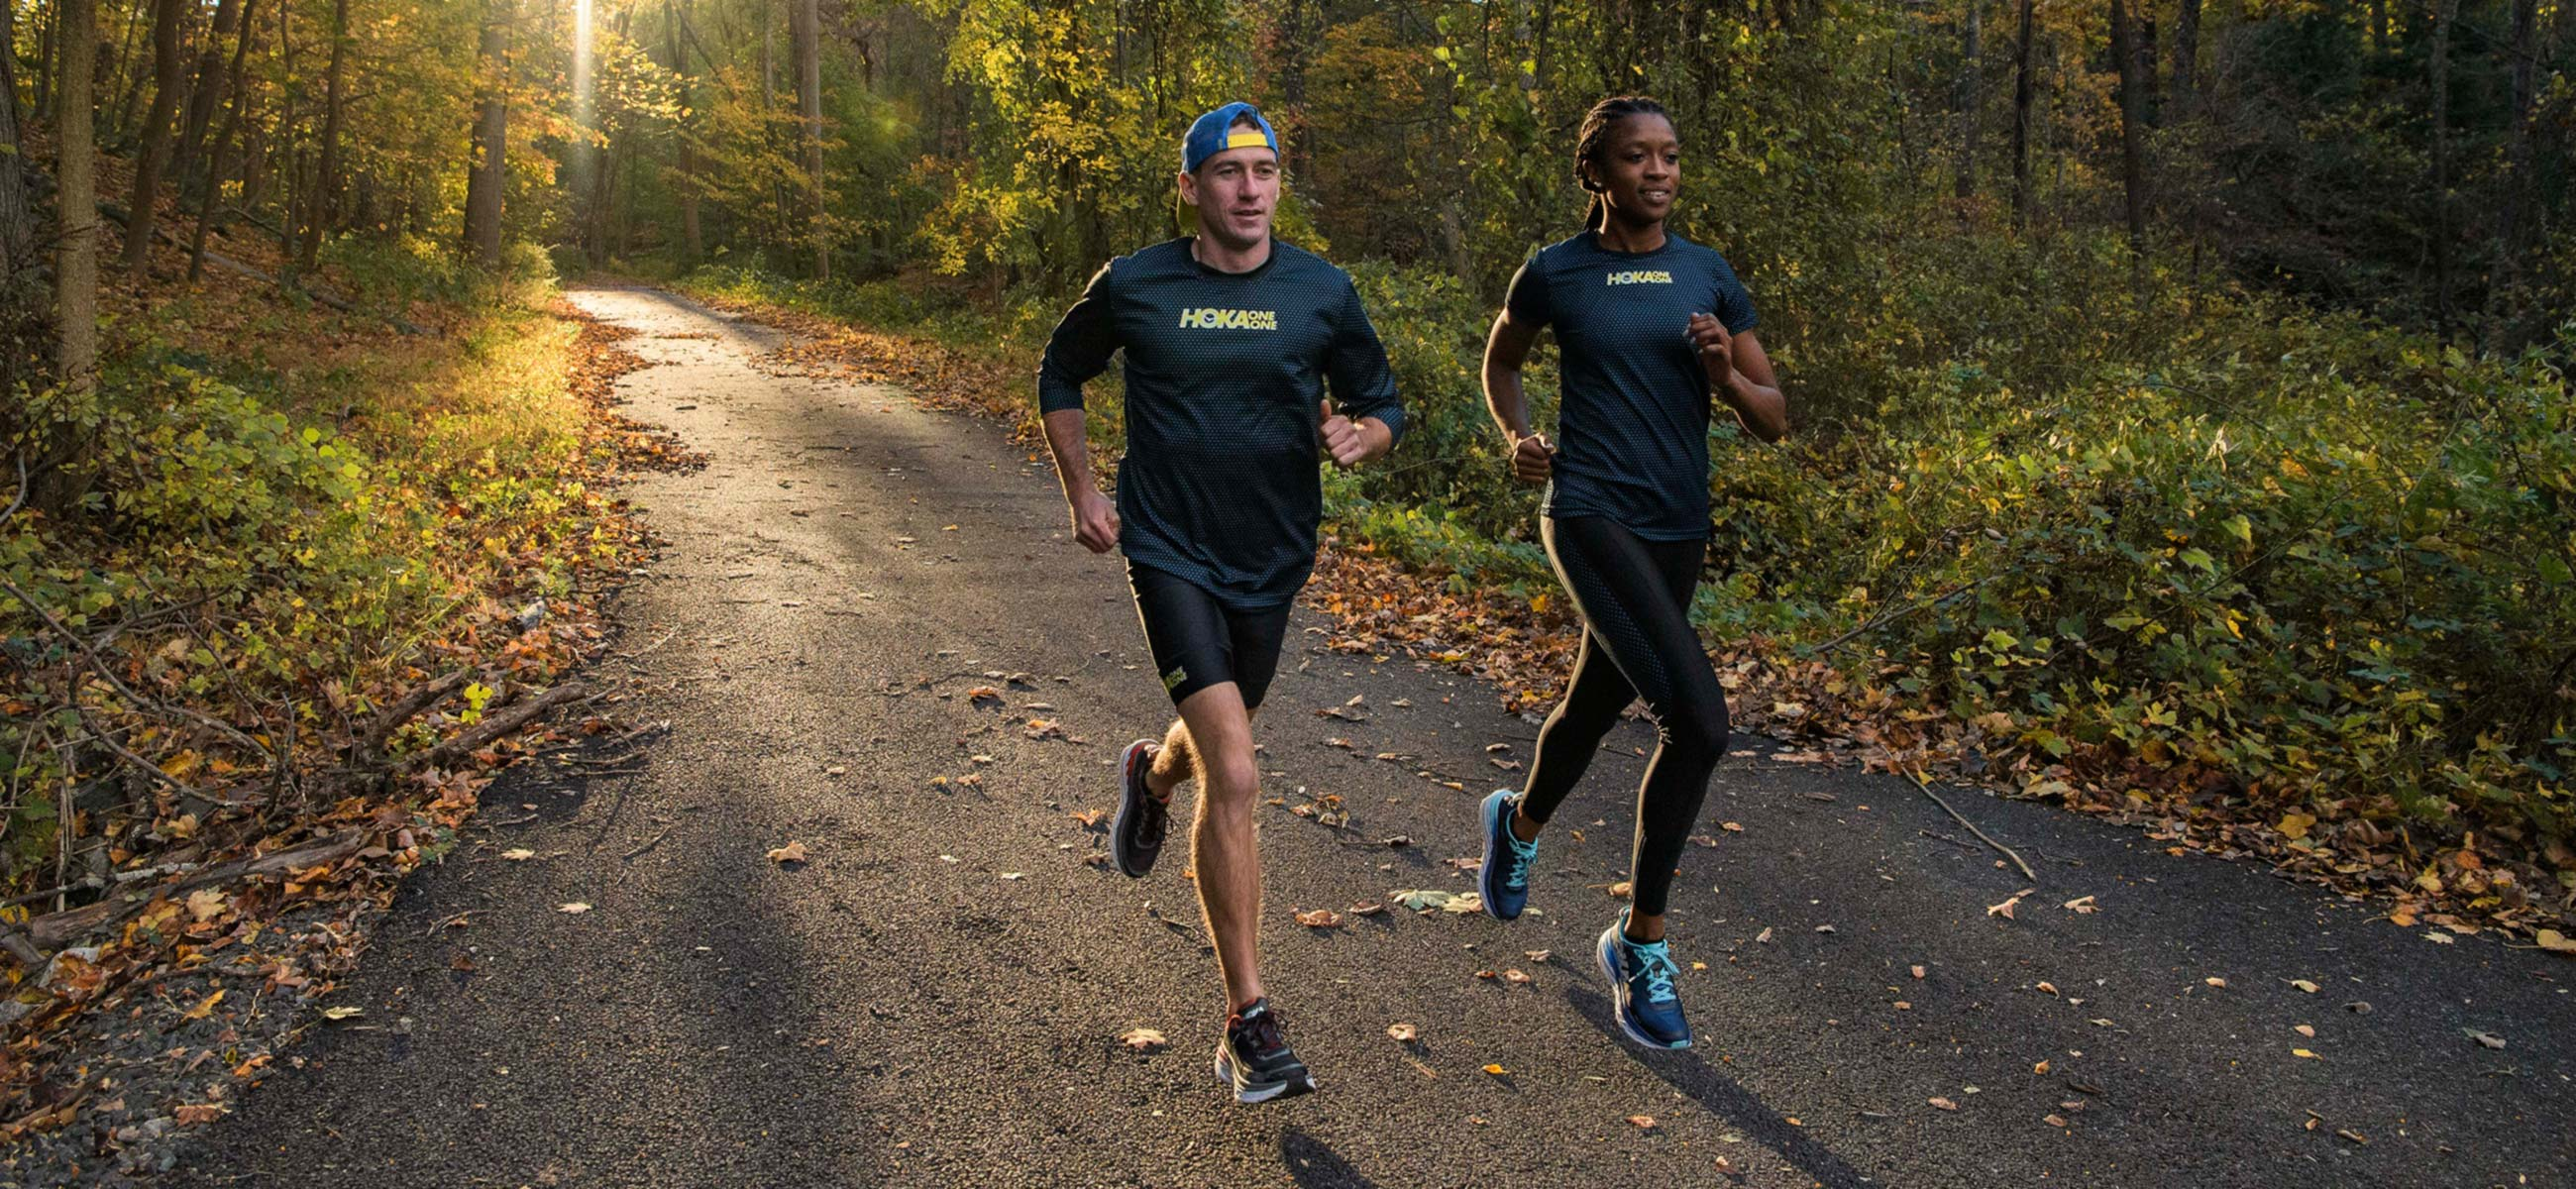 10de450ae4f9c Runners wearing Hoka One One running shoes on a trail in the woods.